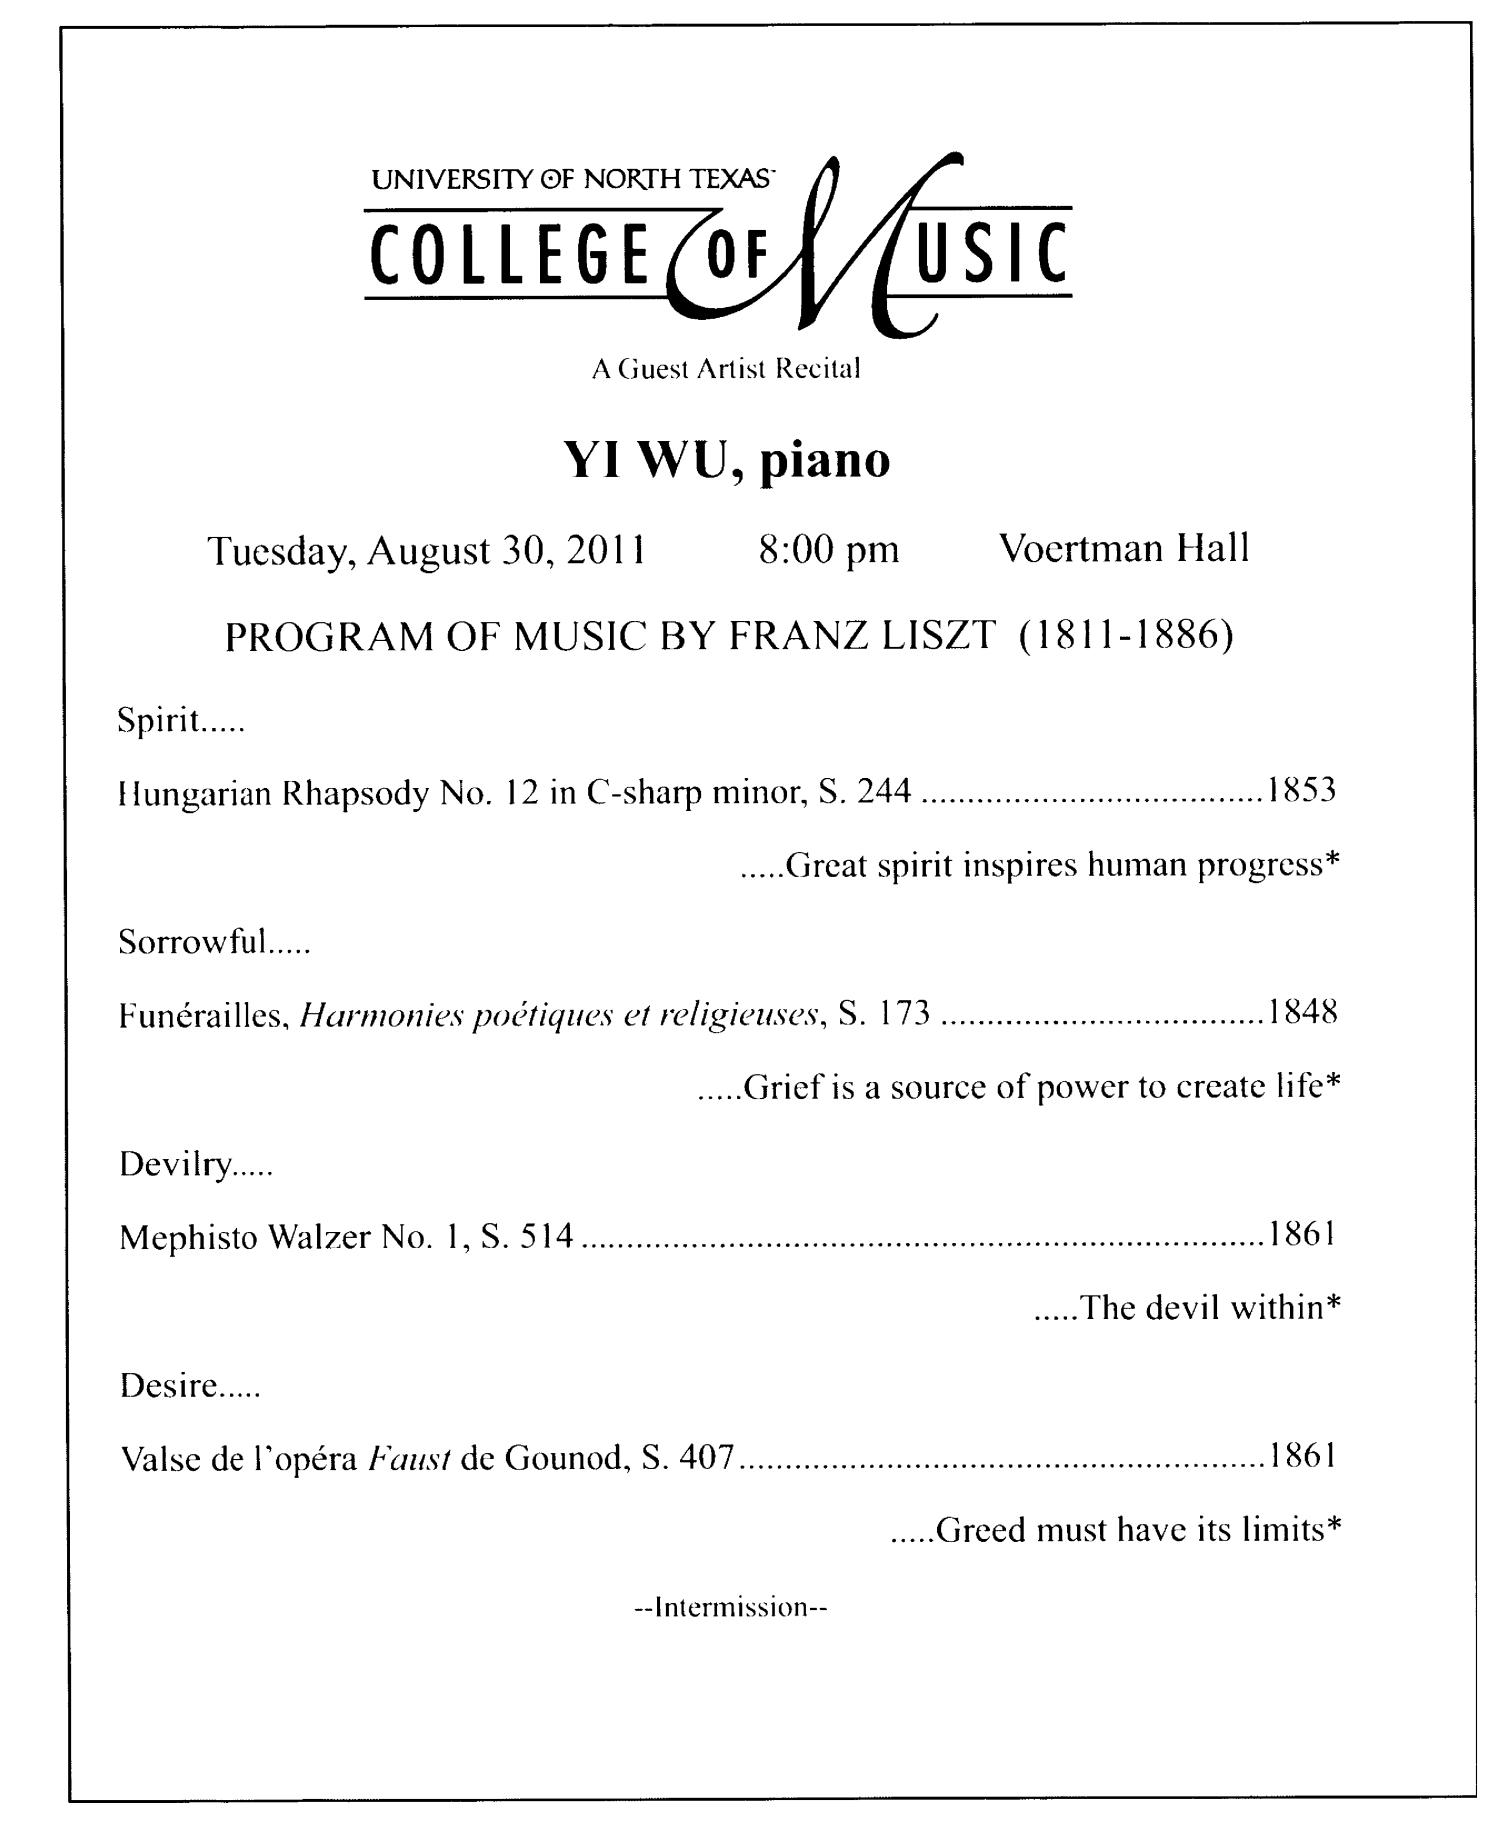 College of Music Program Book 2011-2012: Ensemble & Other Performances, Volume 1                                                                                                      3